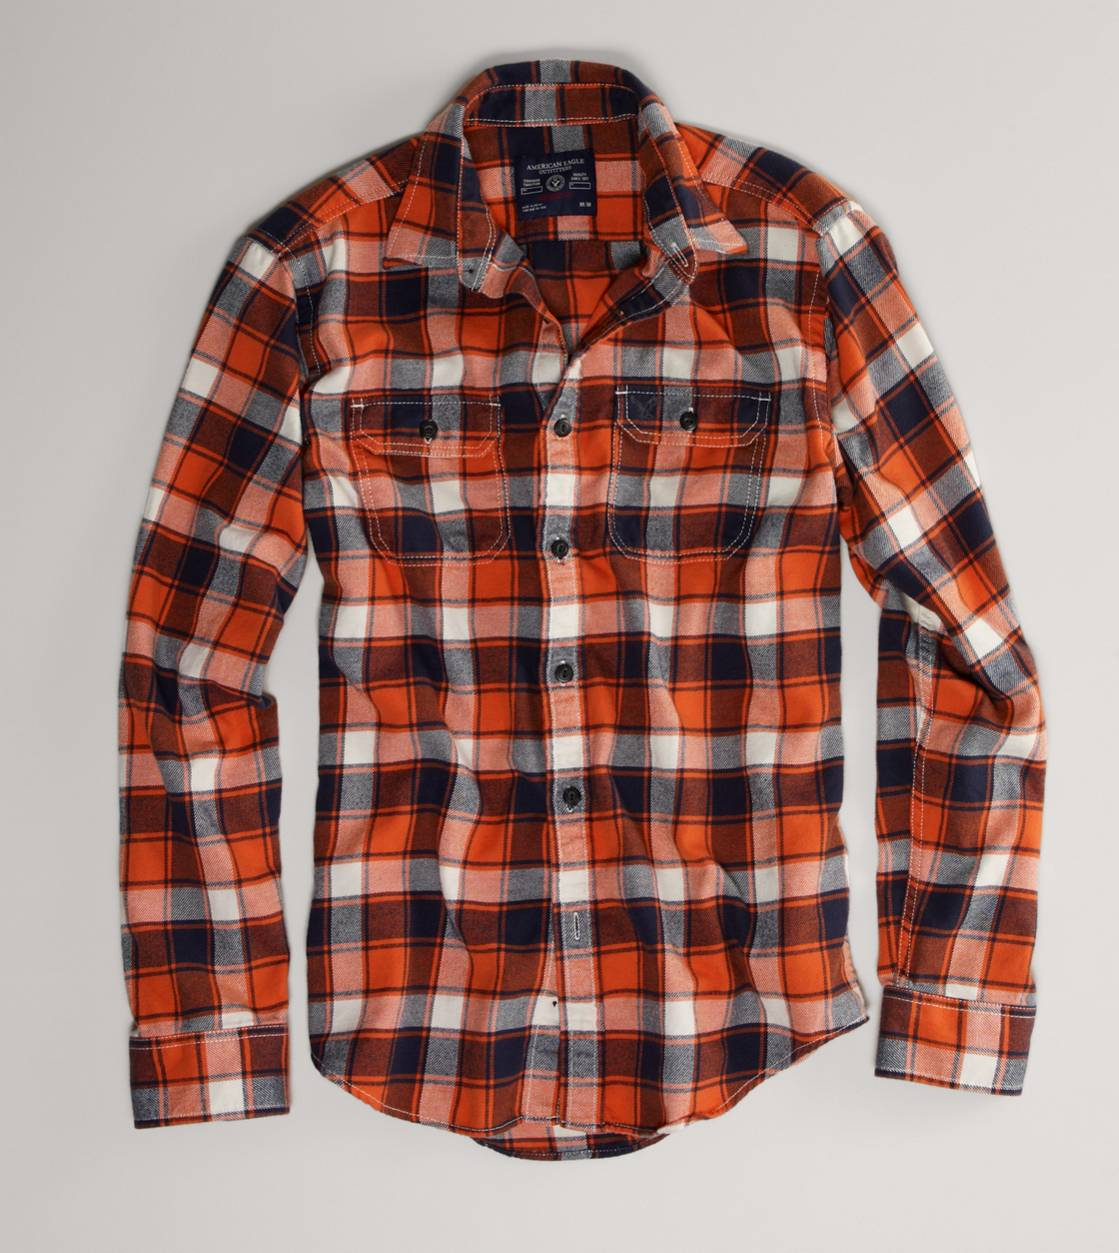 Design Plaid & Flannel Shirts Online. No Minimums or Set-Ups.